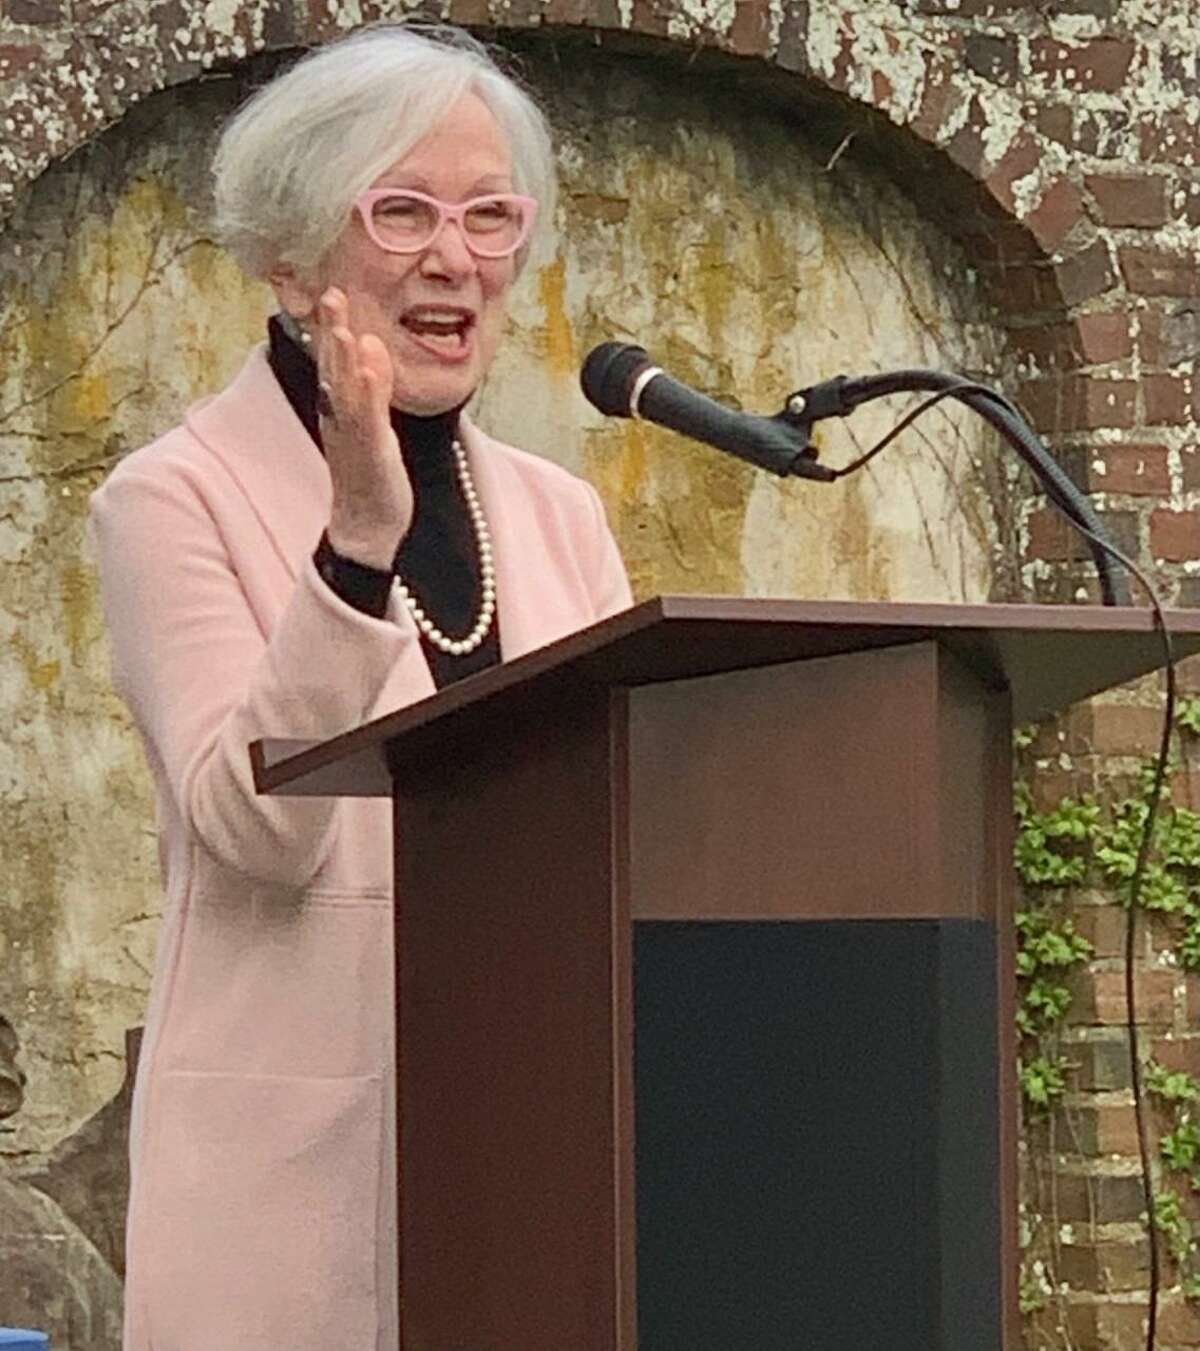 """Ridgefield's Poet Laureate Barb Jennes read an original poem at the event called """"Why Art."""""""